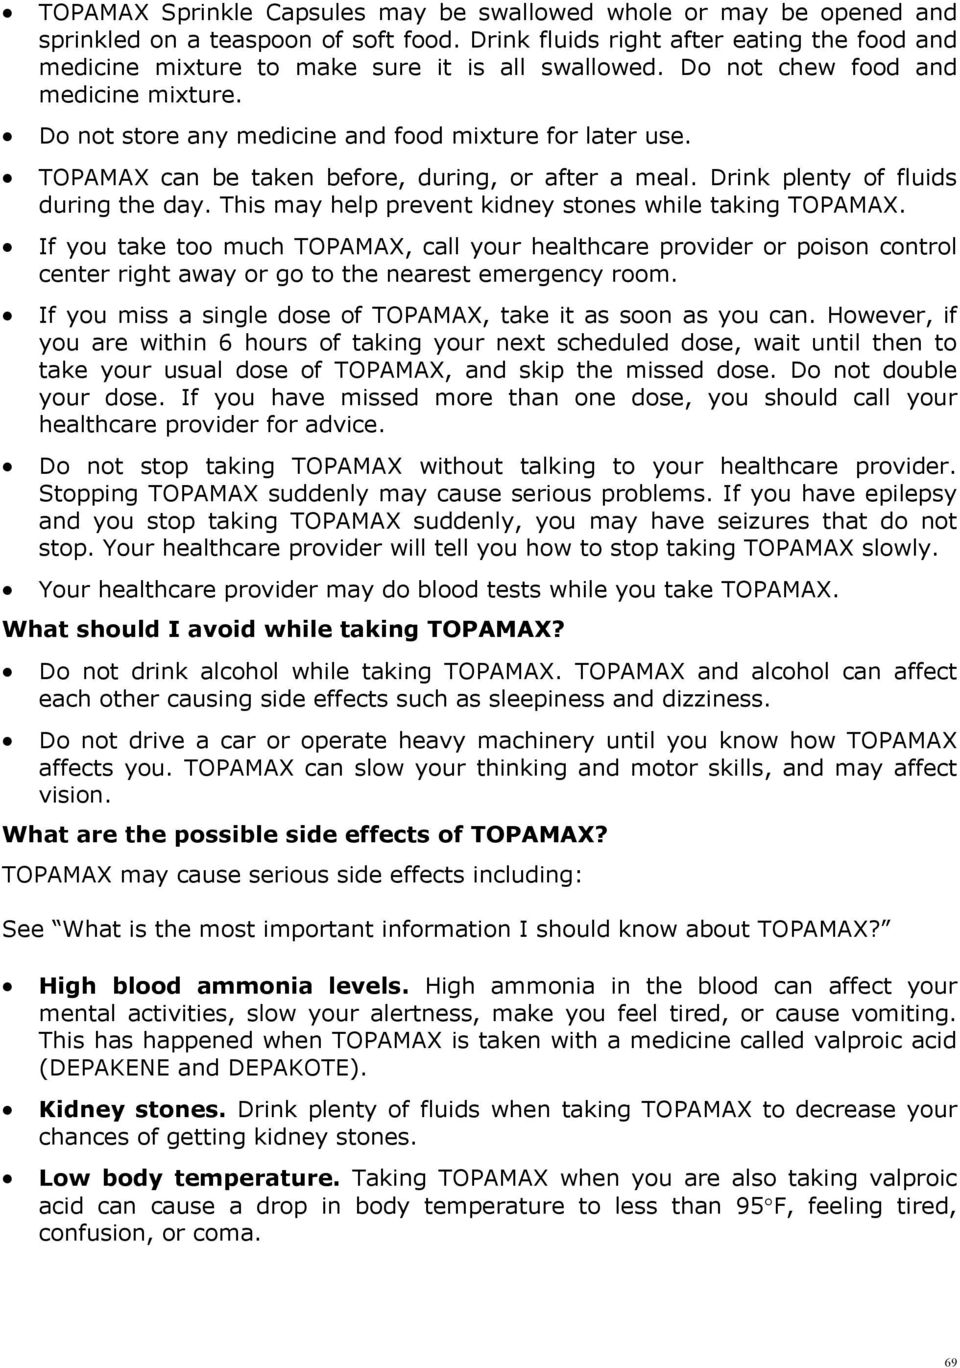 TOPAMAX can be taken before, during, or after a meal. Drink plenty of fluids during the day. This may help prevent kidney stones while taking TOPAMAX.